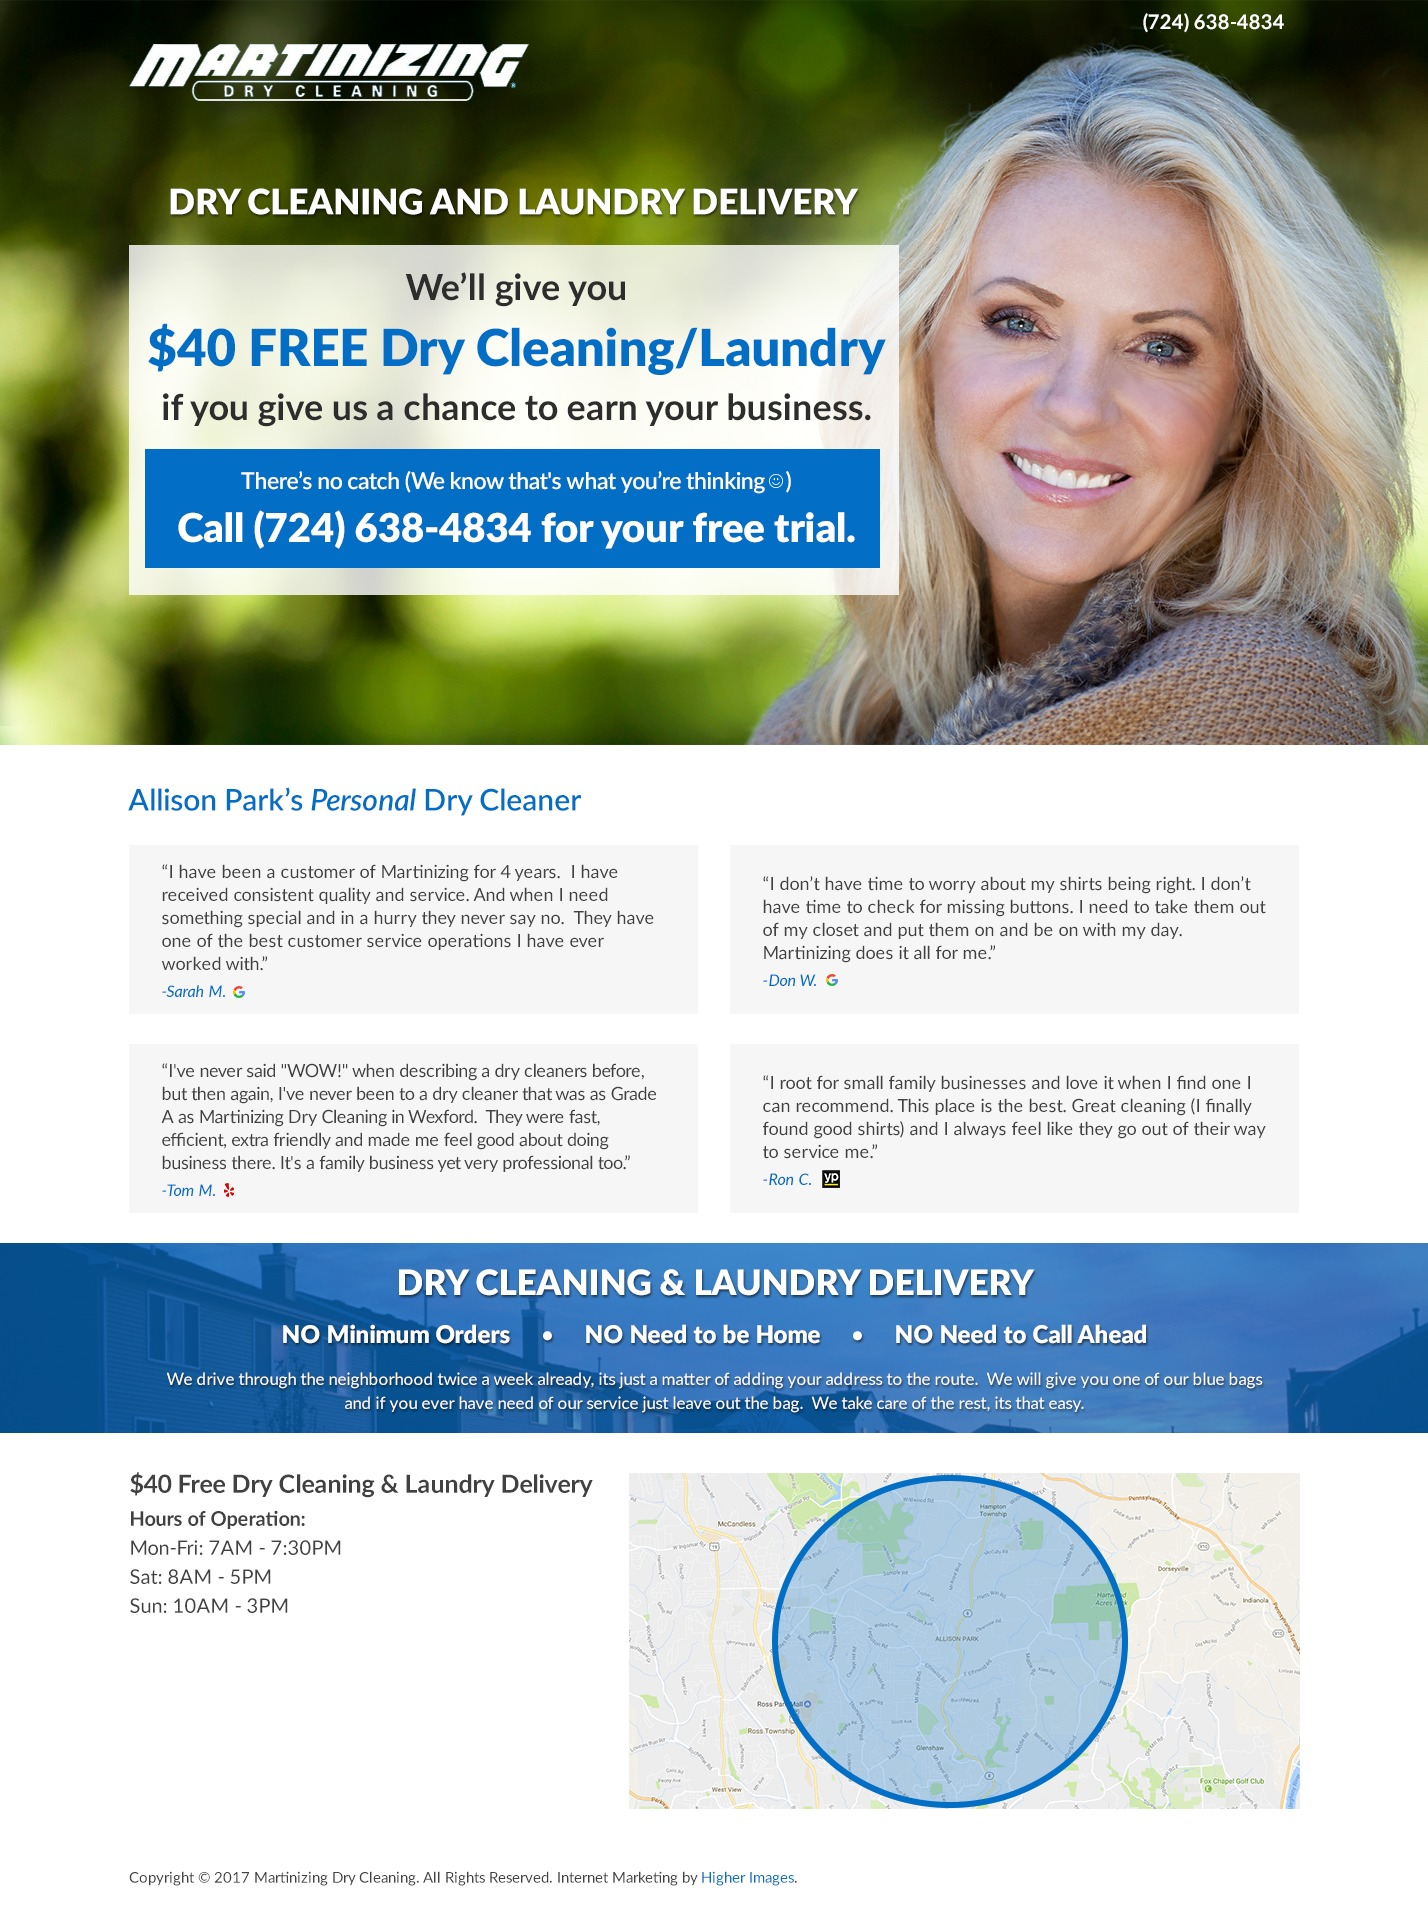 Martinizing Dry Cleaning WordPress website template